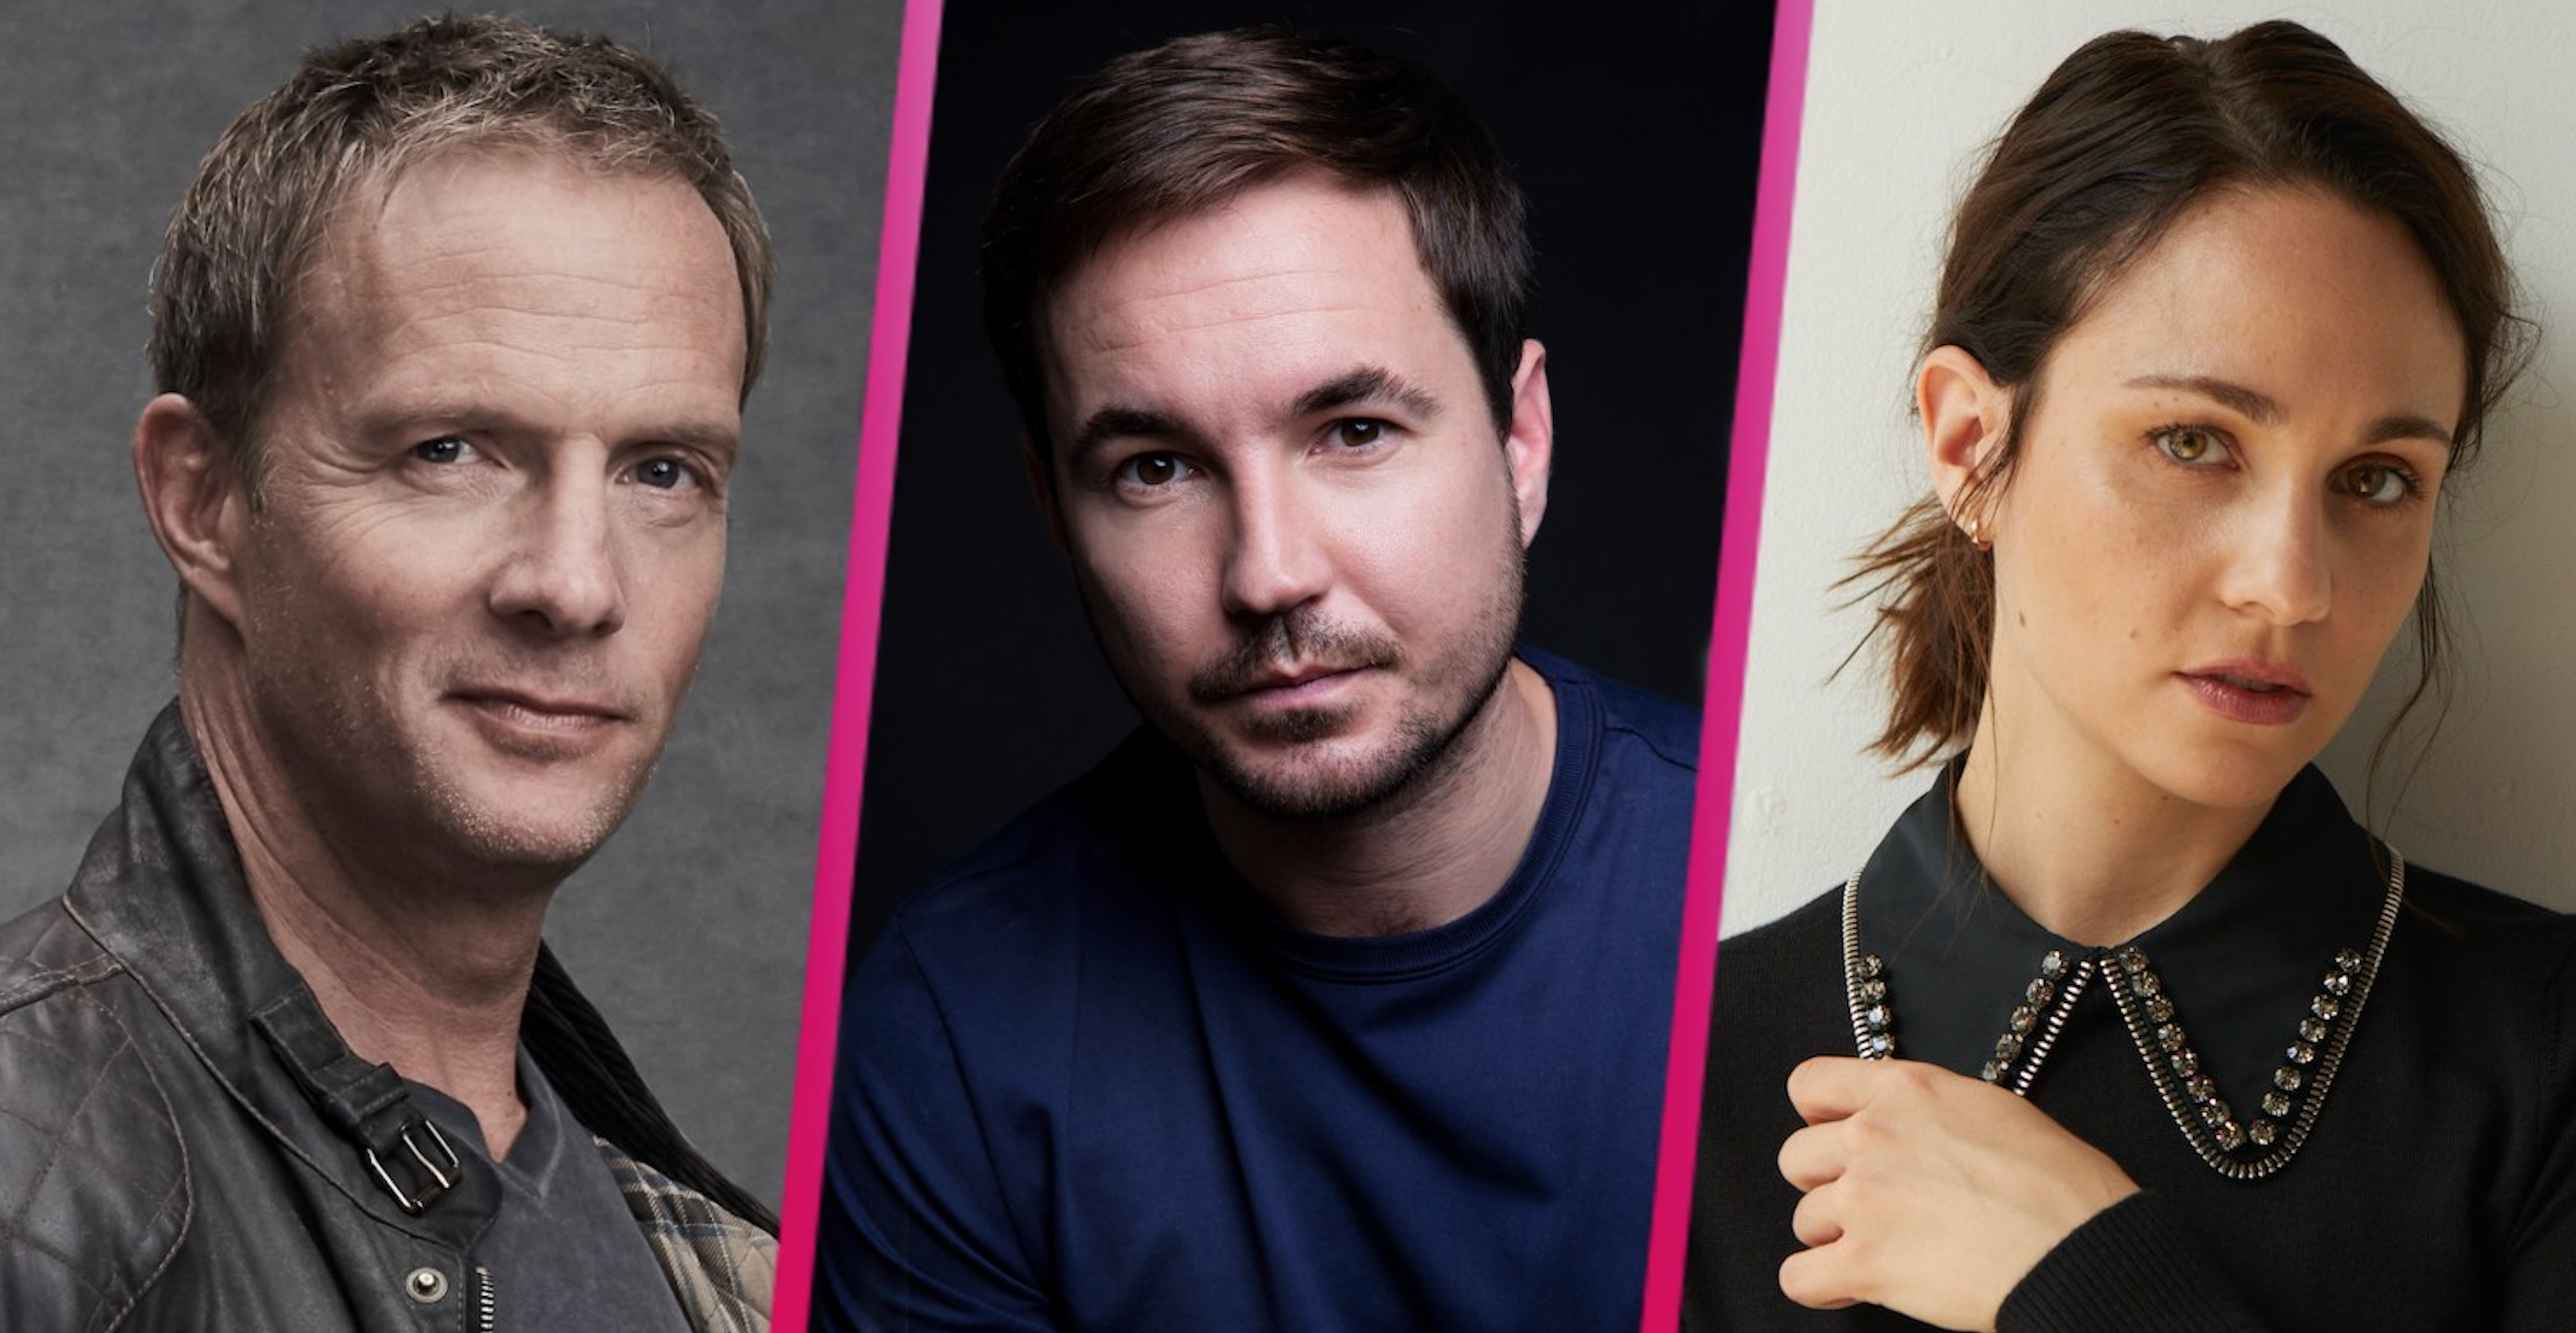 Martin Compston to star in ITV thriller Our House - but what's it about?